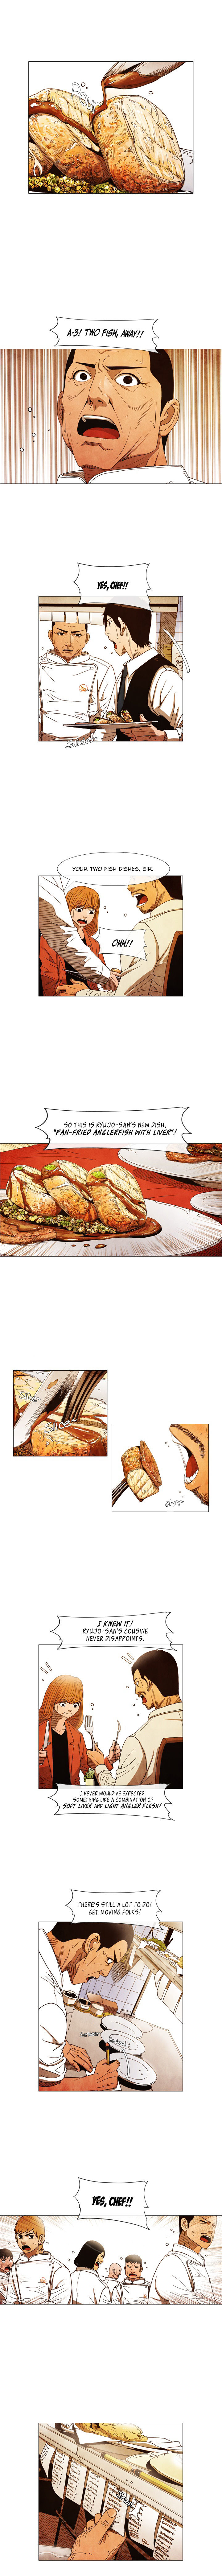 Michelin Star 63 Page 2